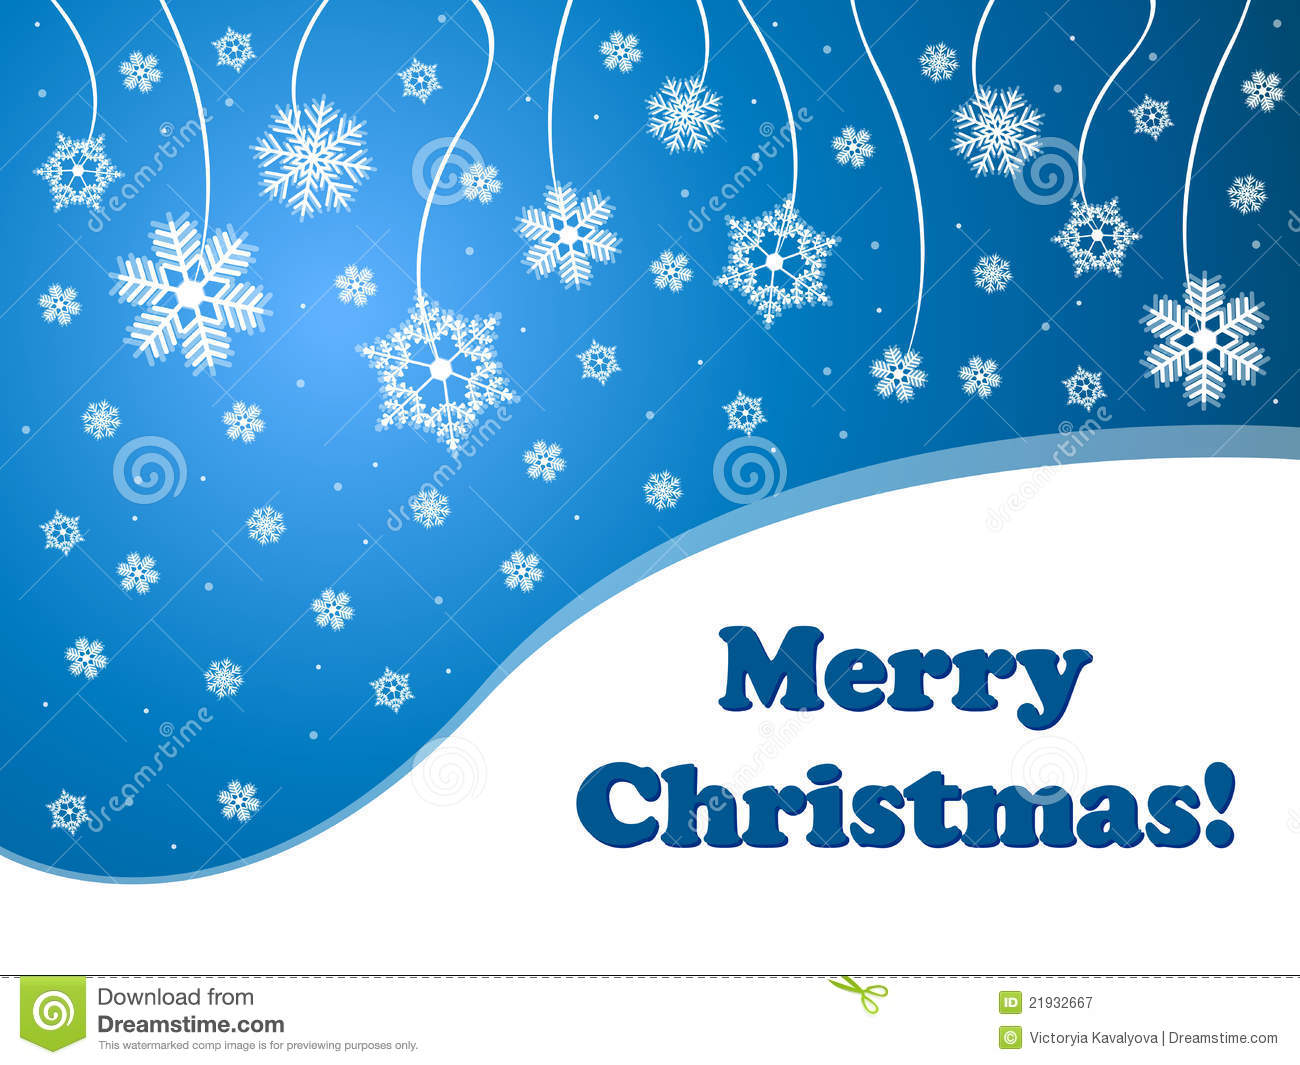 Snowflakes Blue Background Merry Christmas Royalty Free Stock ...